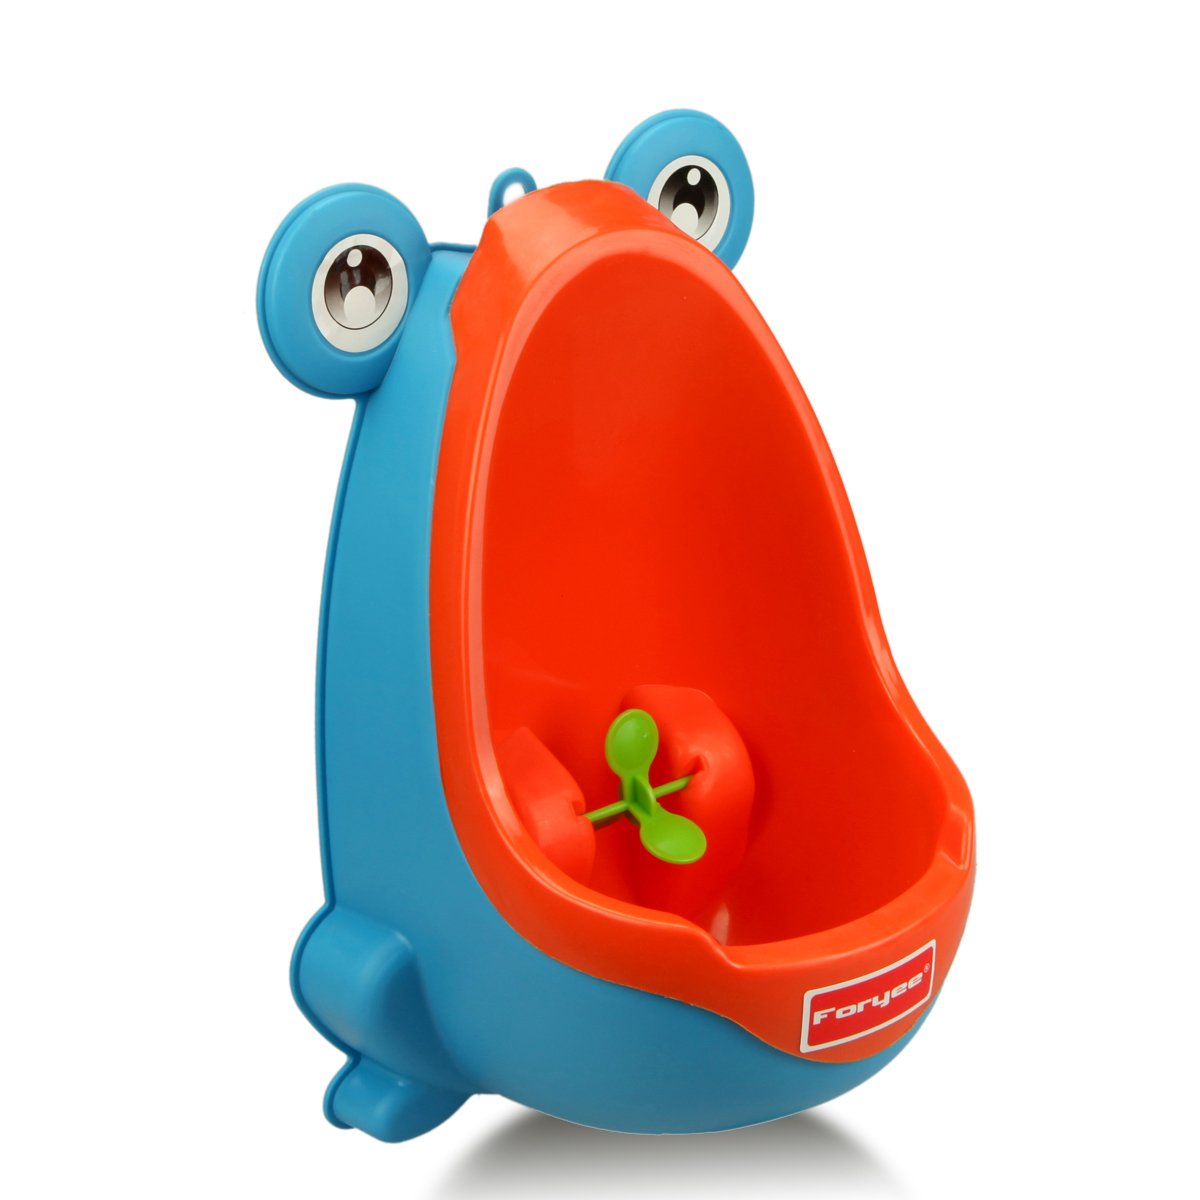 Foryee Cute Frog Potty Training Urinal for Boys with Funny Aiming Target - Blue by FORYEE   B00XMK1GBM